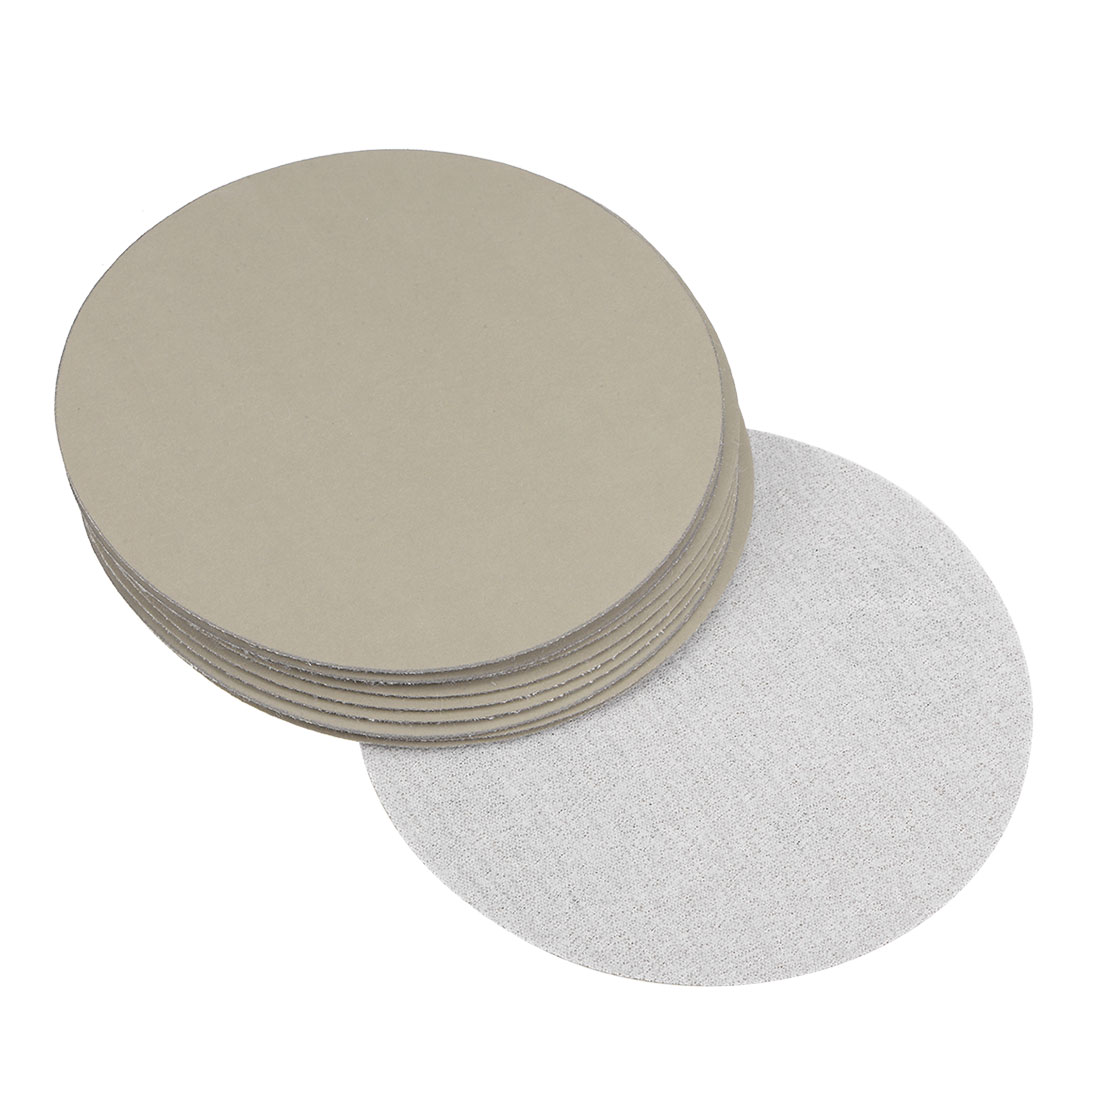 5 inch Wet Dry Discs 4000 Grit Hook and Loop Sanding Disc Silicon Carbide 10pcs